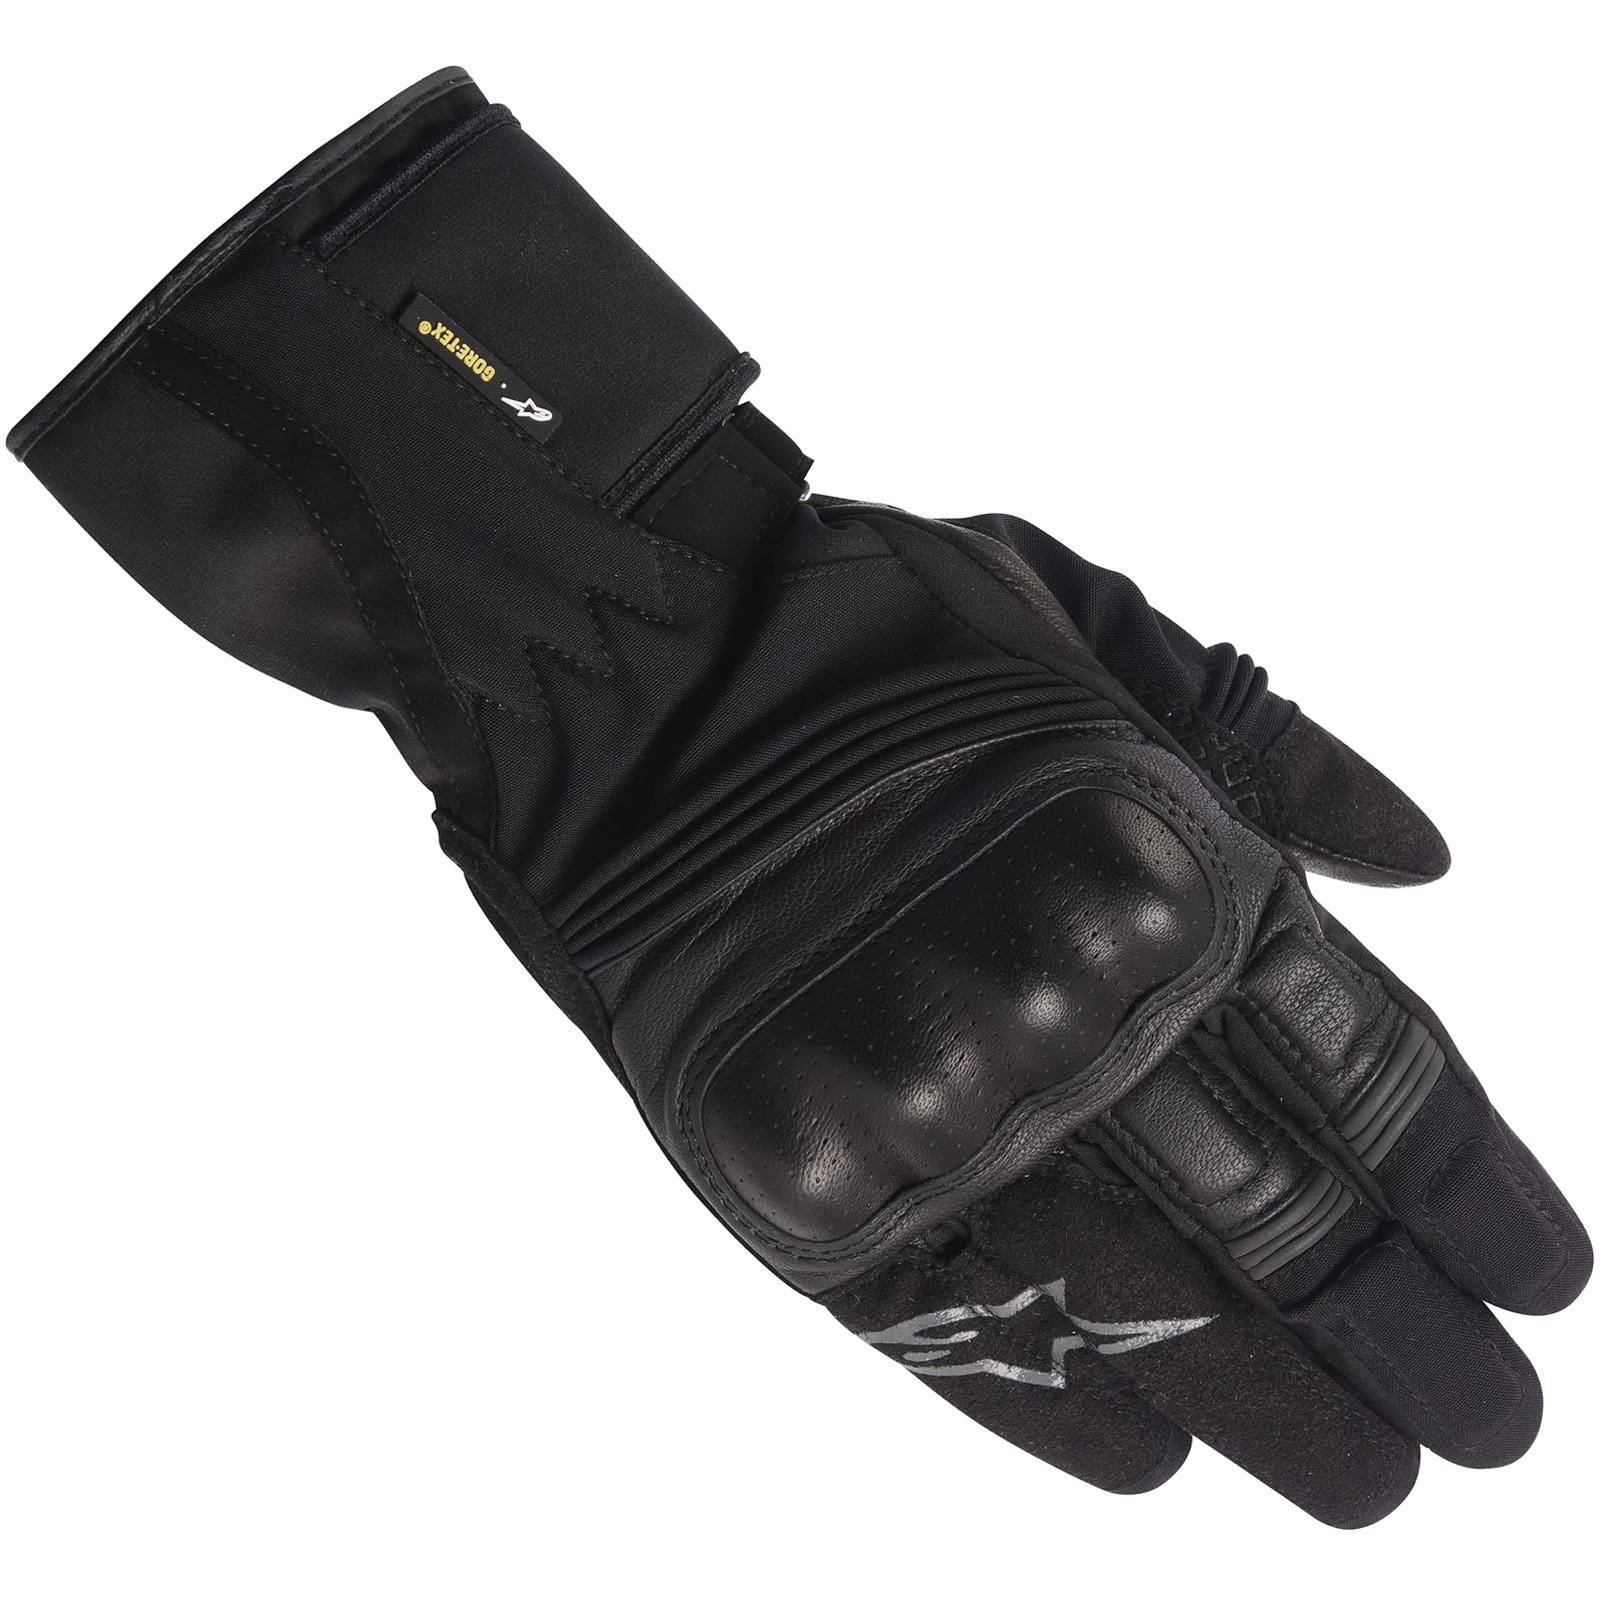 Xtrafit motorcycle gloves -